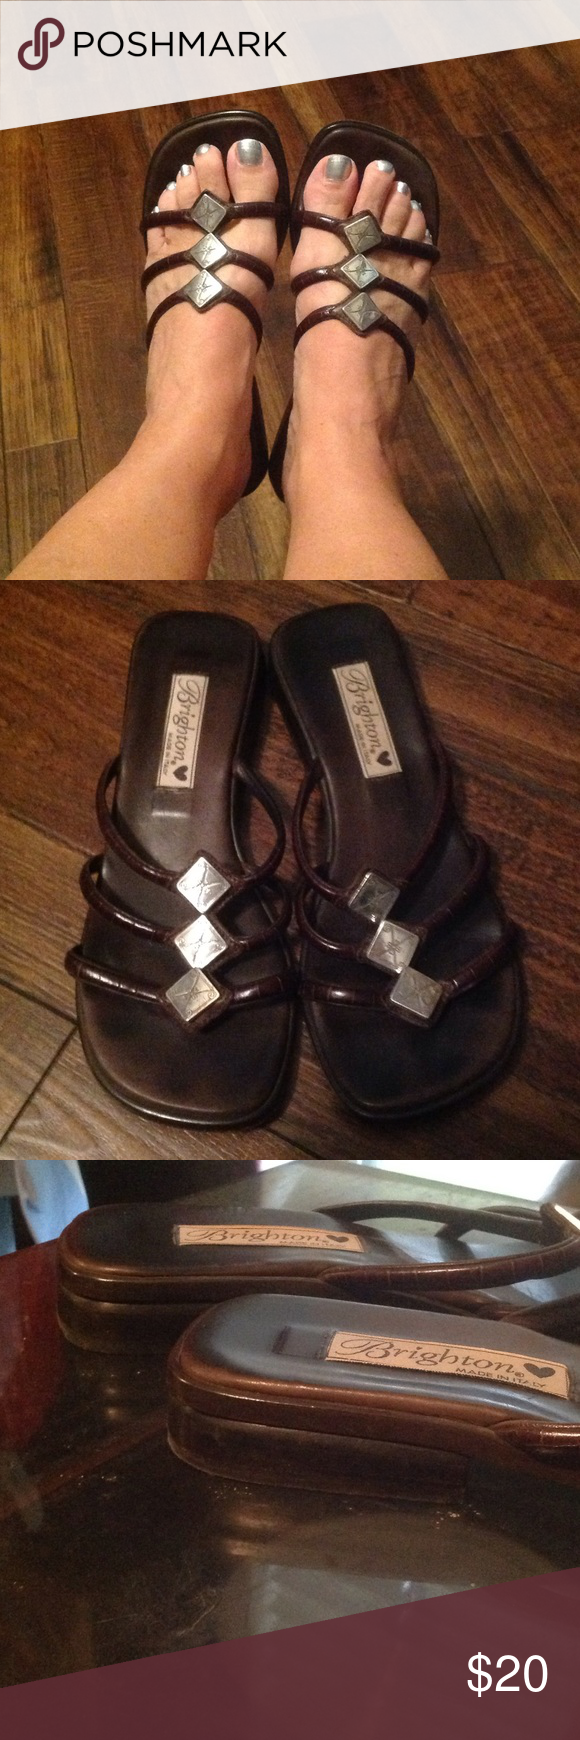 """Brighton """"Love"""" Sandals Chocolate brown leather croc sandals. Worn with lots of """"Love"""". Heels still in tact, silver squares still attached. Brighton Shoes Sandals"""